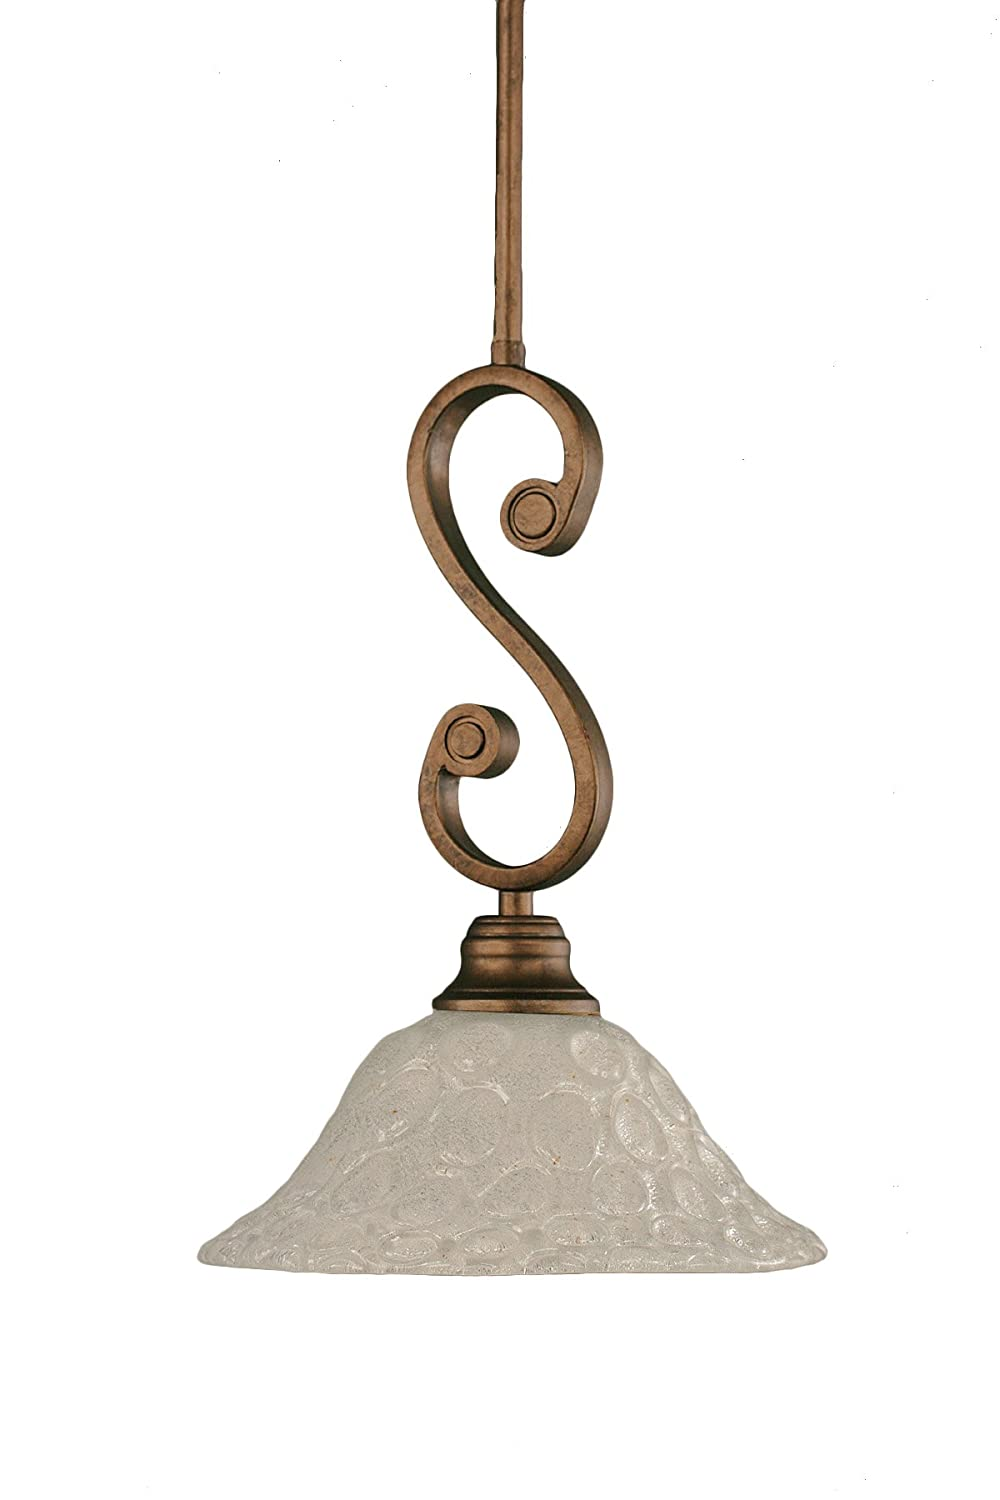 Toltec Lighting 50-BRZ-434 Curl Mini-Pendant Light Bronze Finish with Firr/é Saturn Glass 10-Inch